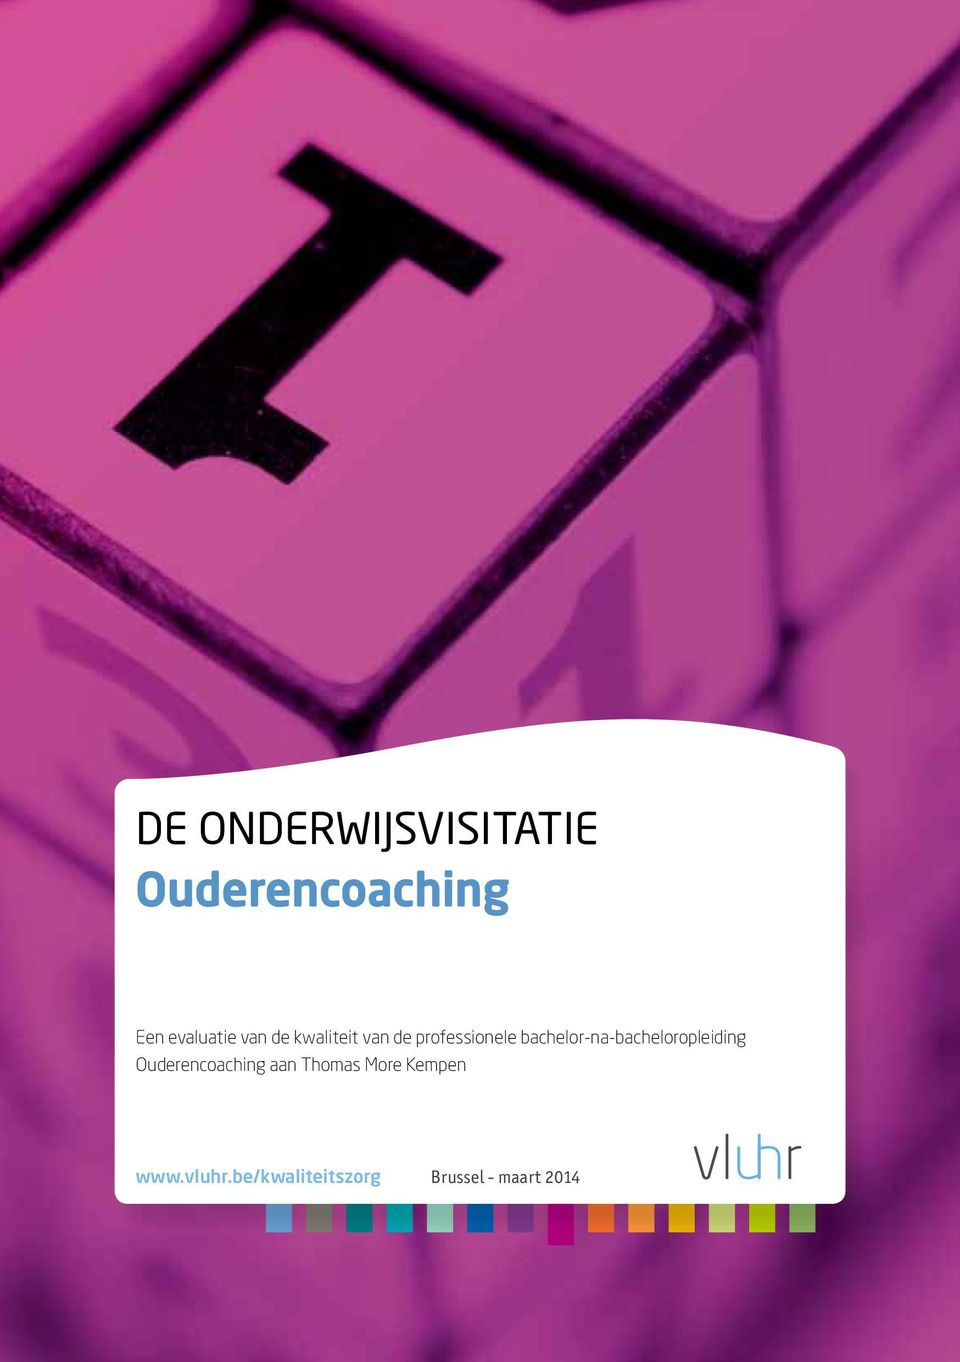 bachelor-na-bacheloropleiding Ouderencoaching aan